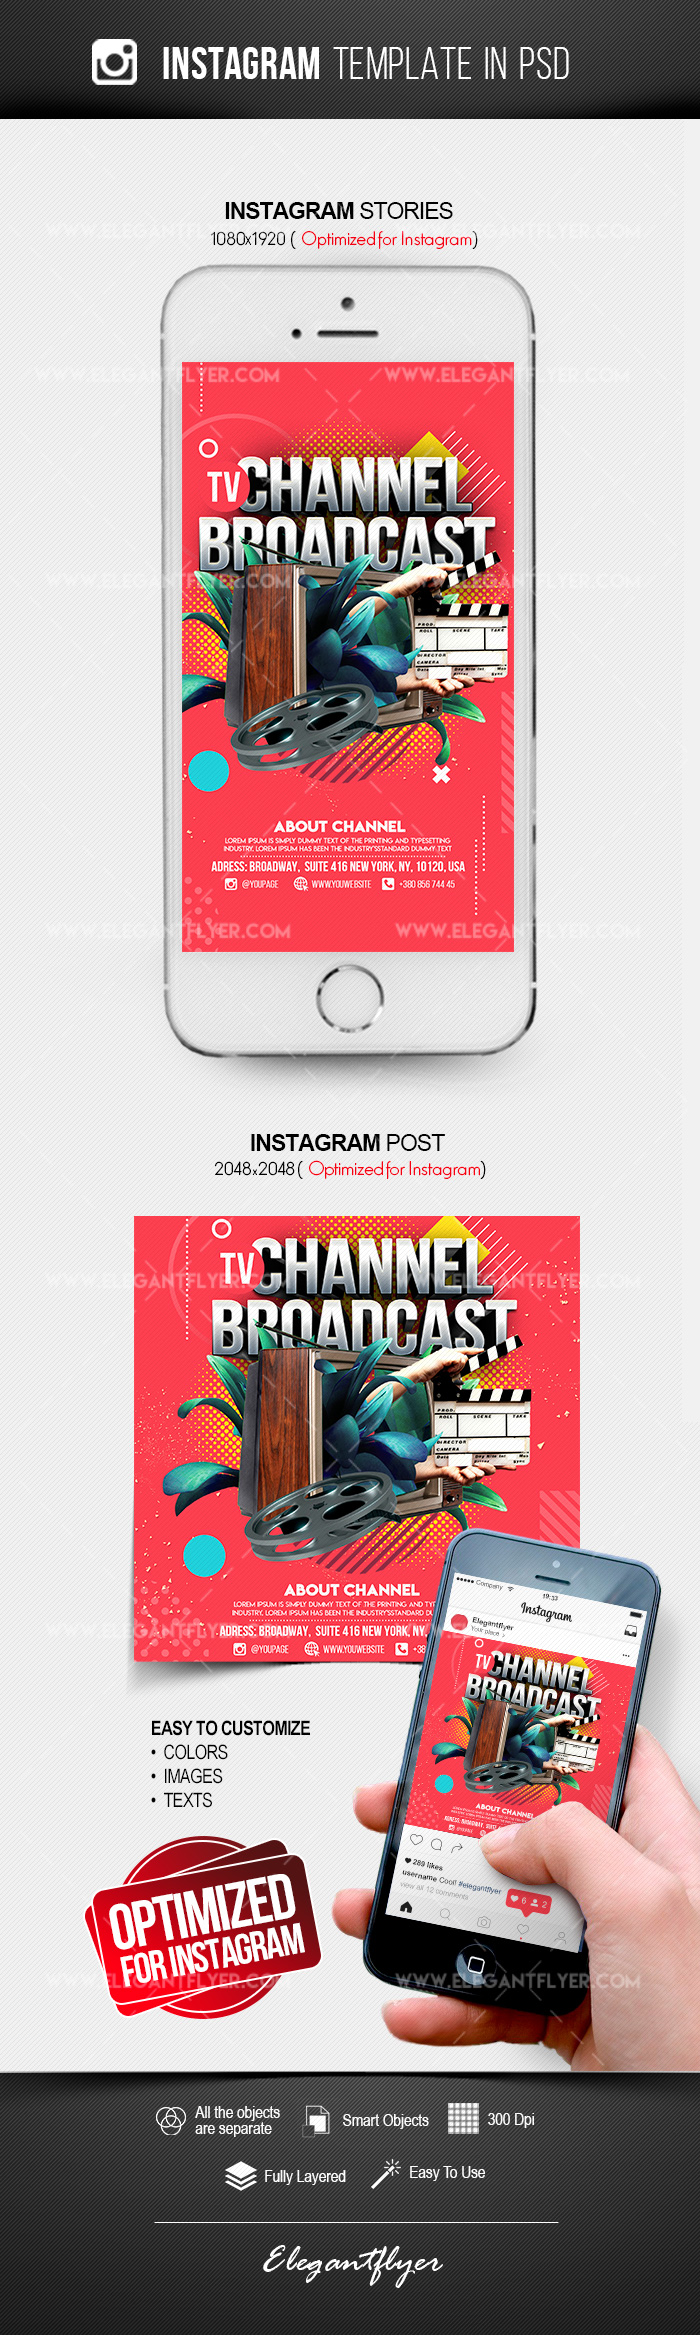 TV Channel Broadcast – Instagram Stories Template in PSD + Post Templates